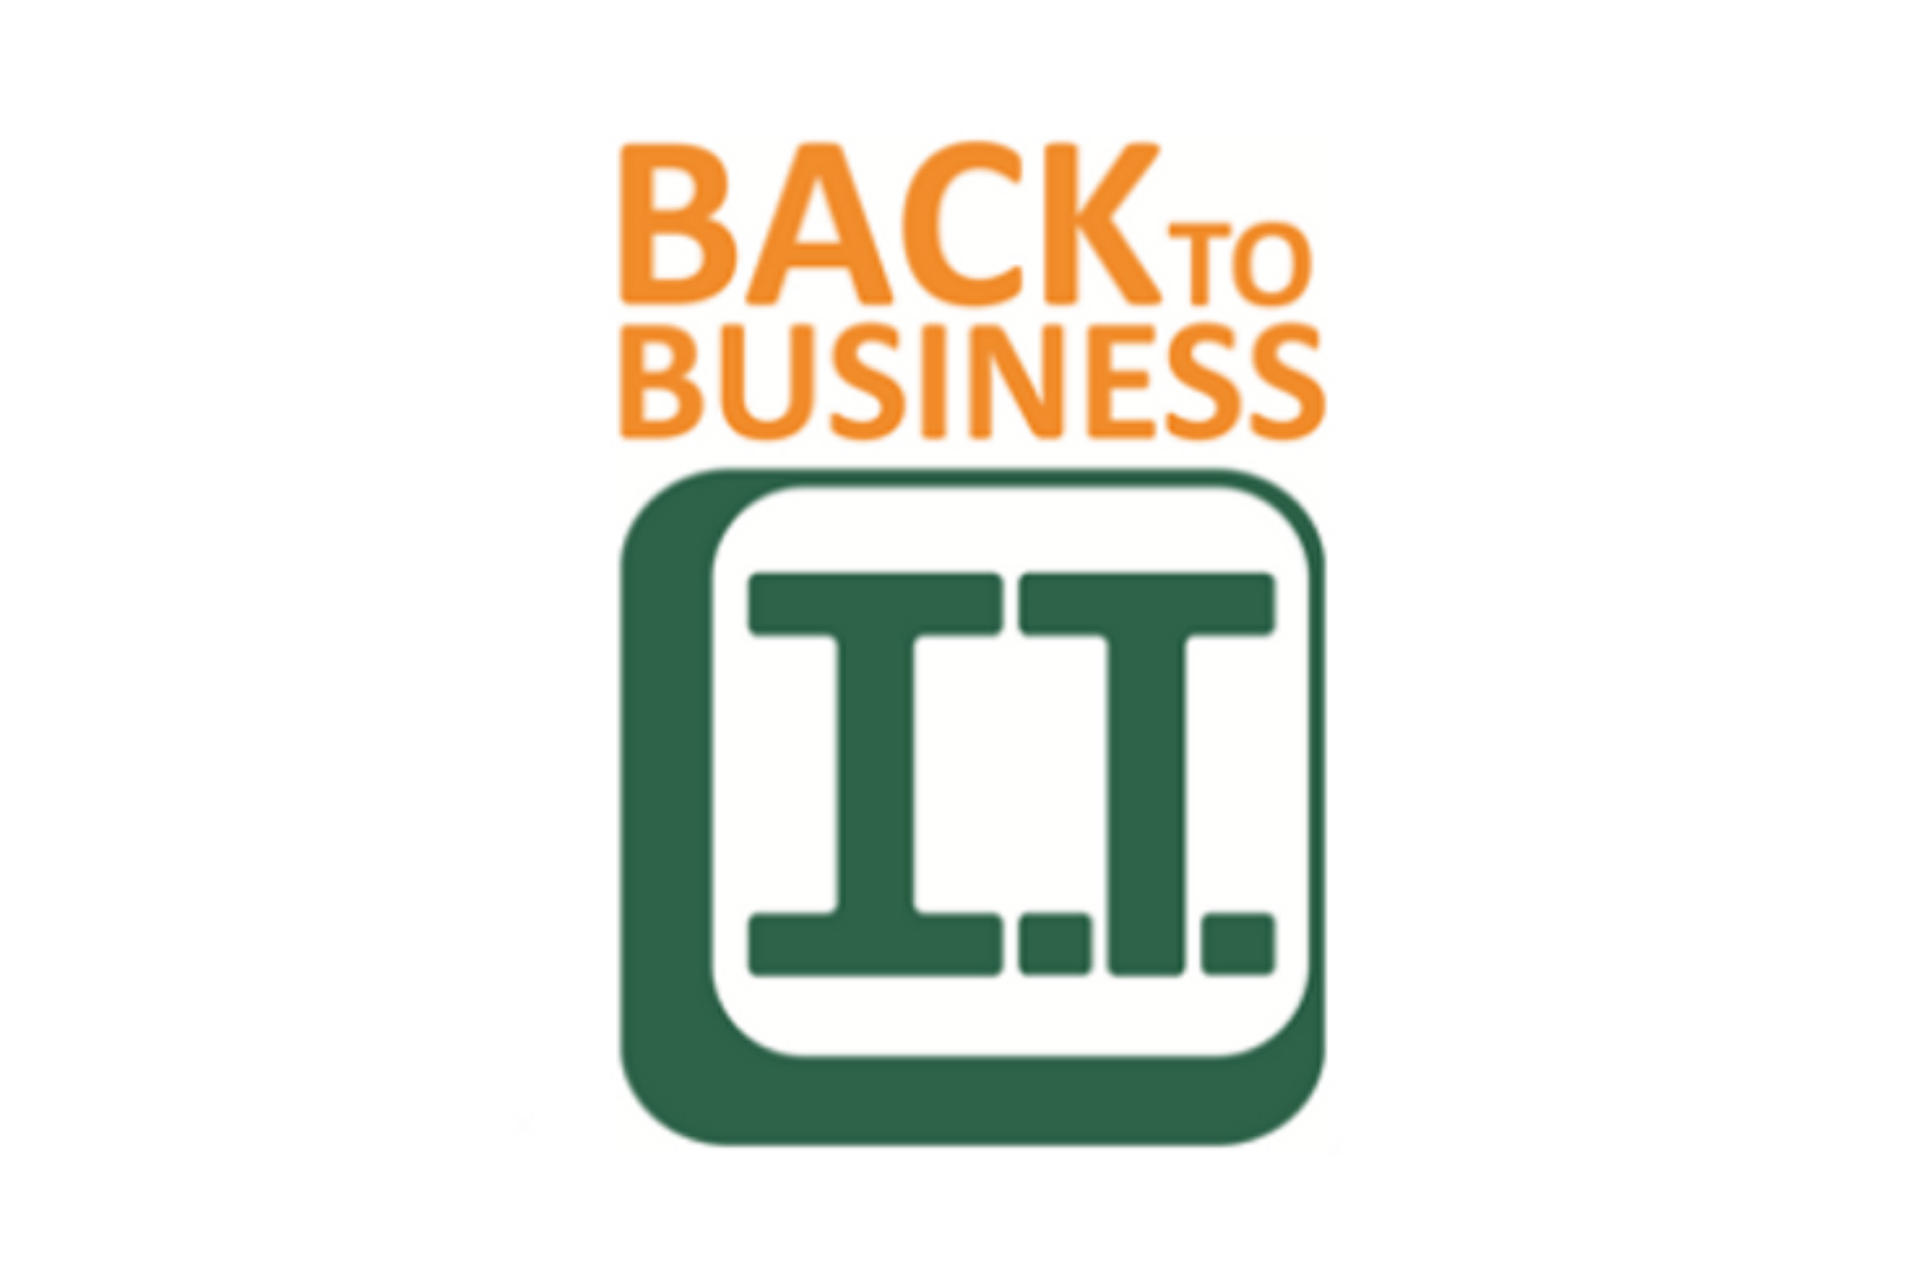 BacktoBusinessLogo